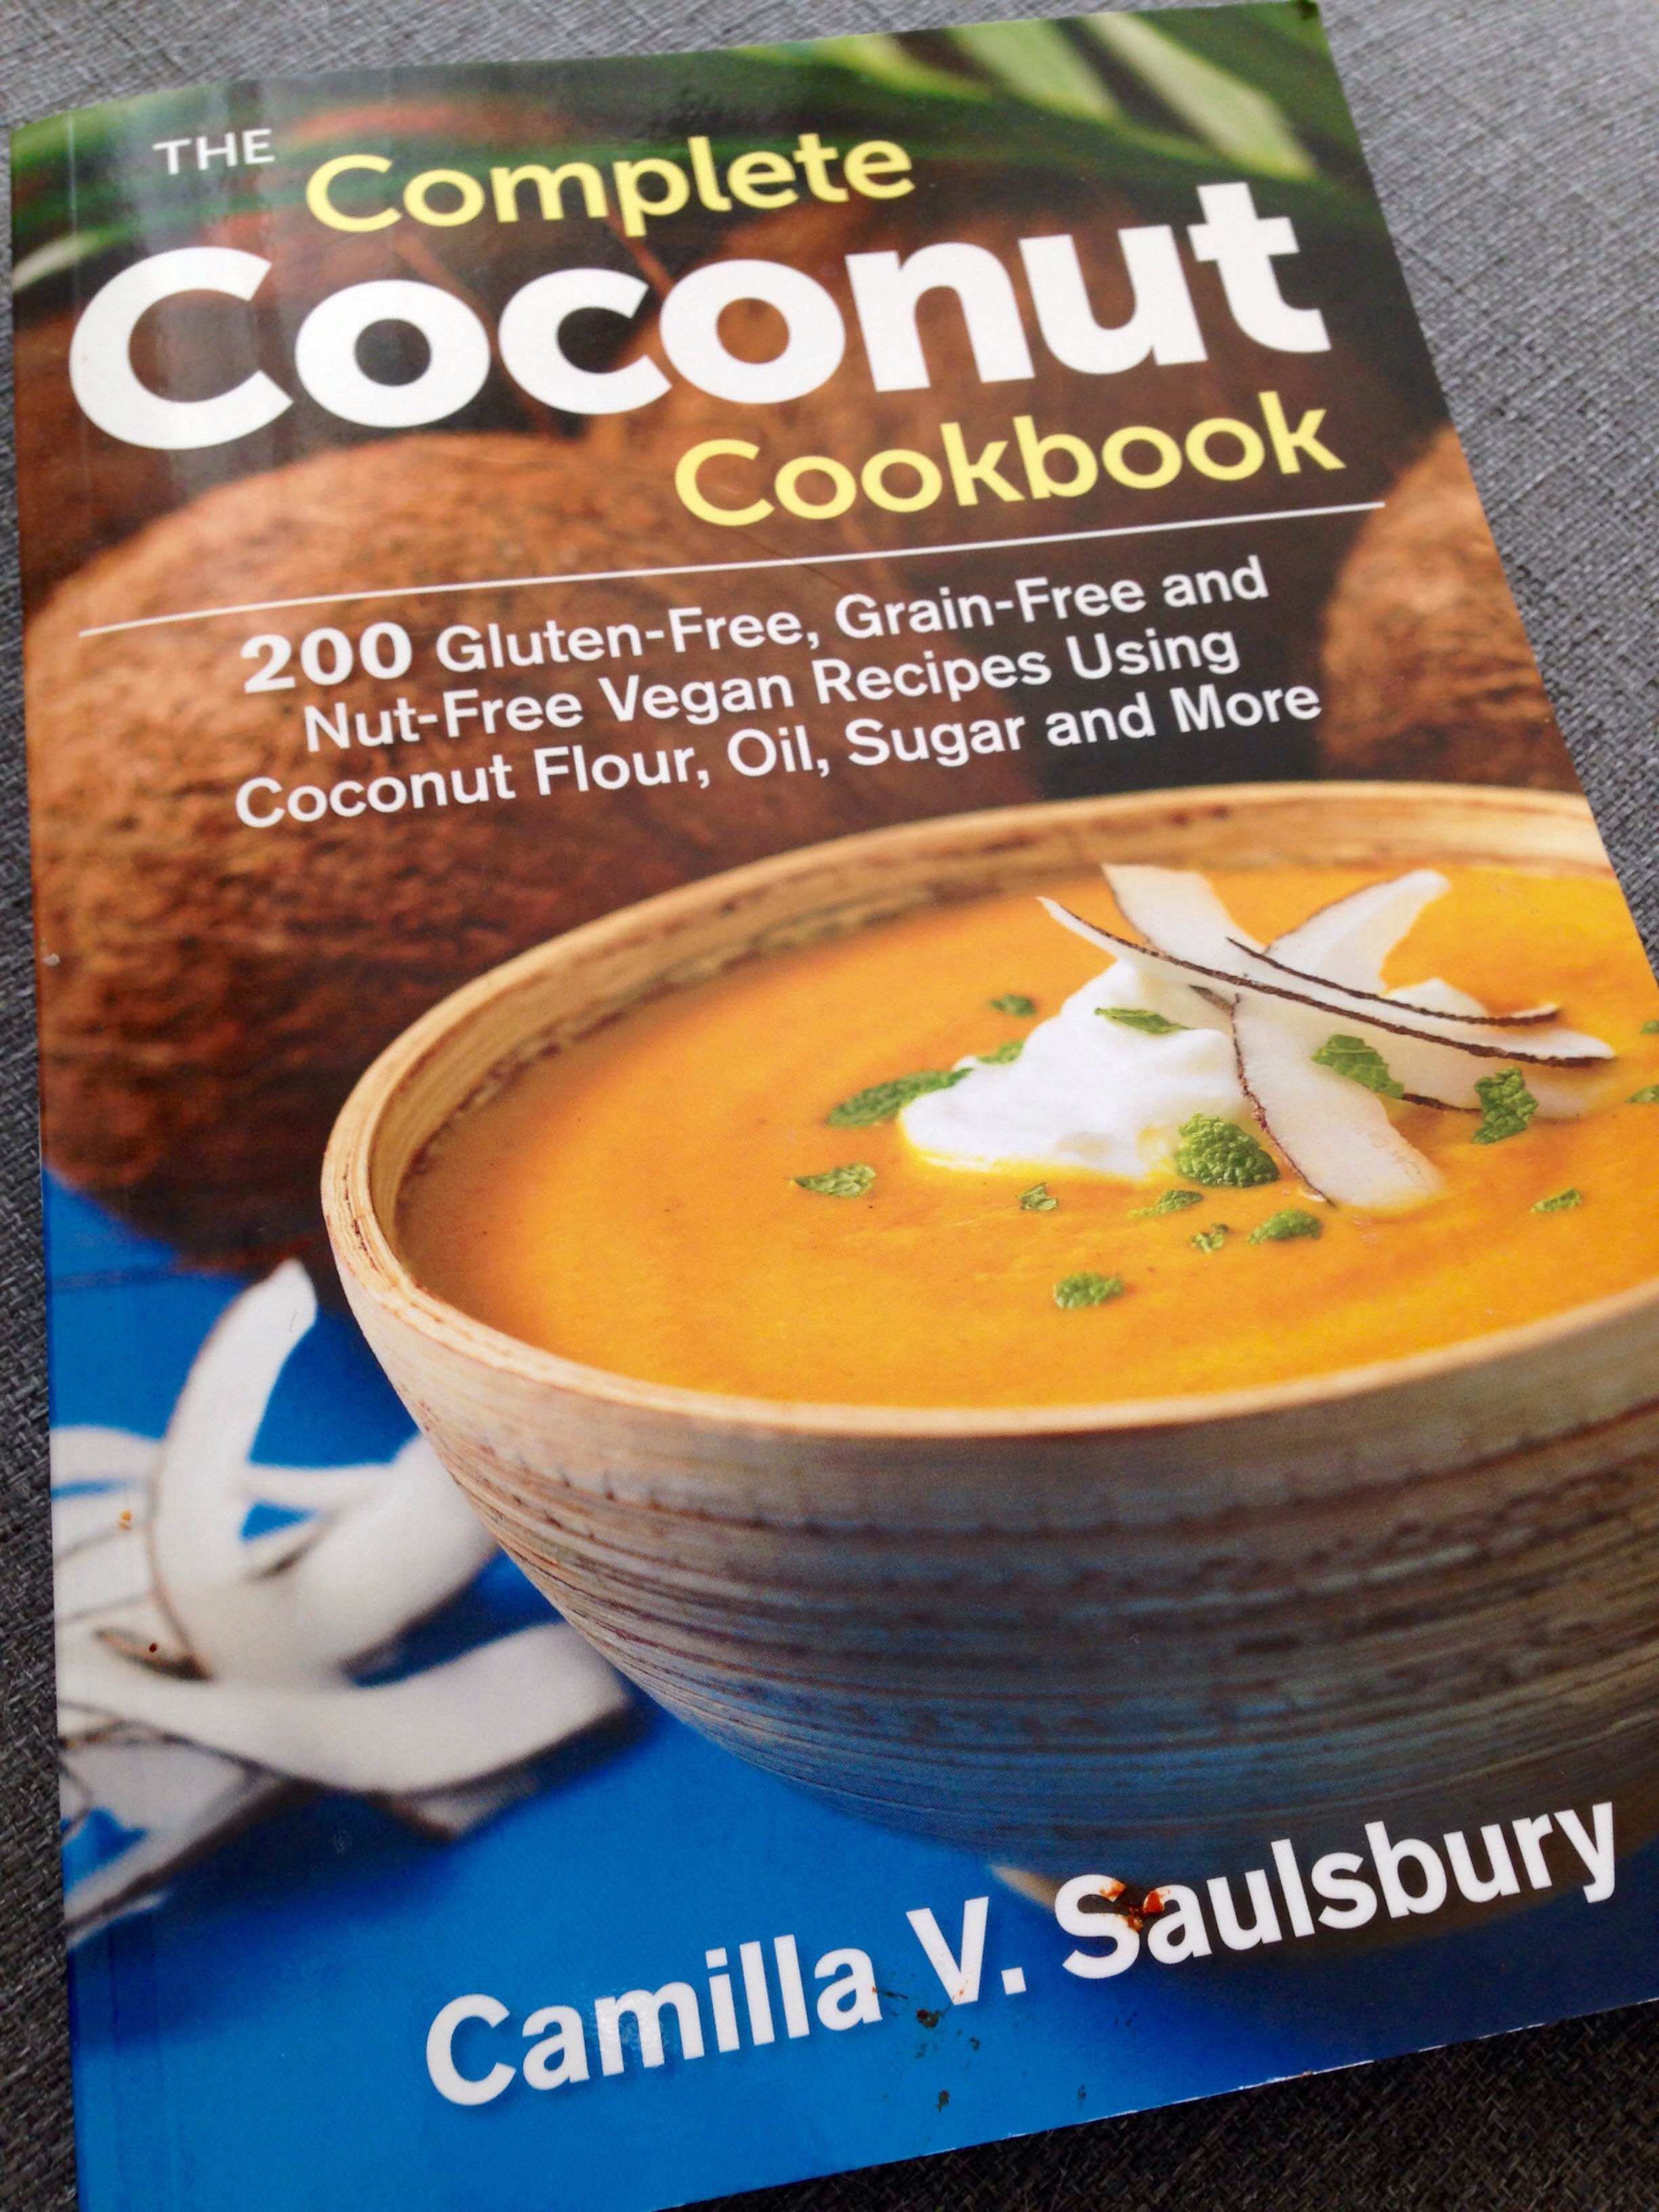 coconut cookbook via dallasfoodnerd.com